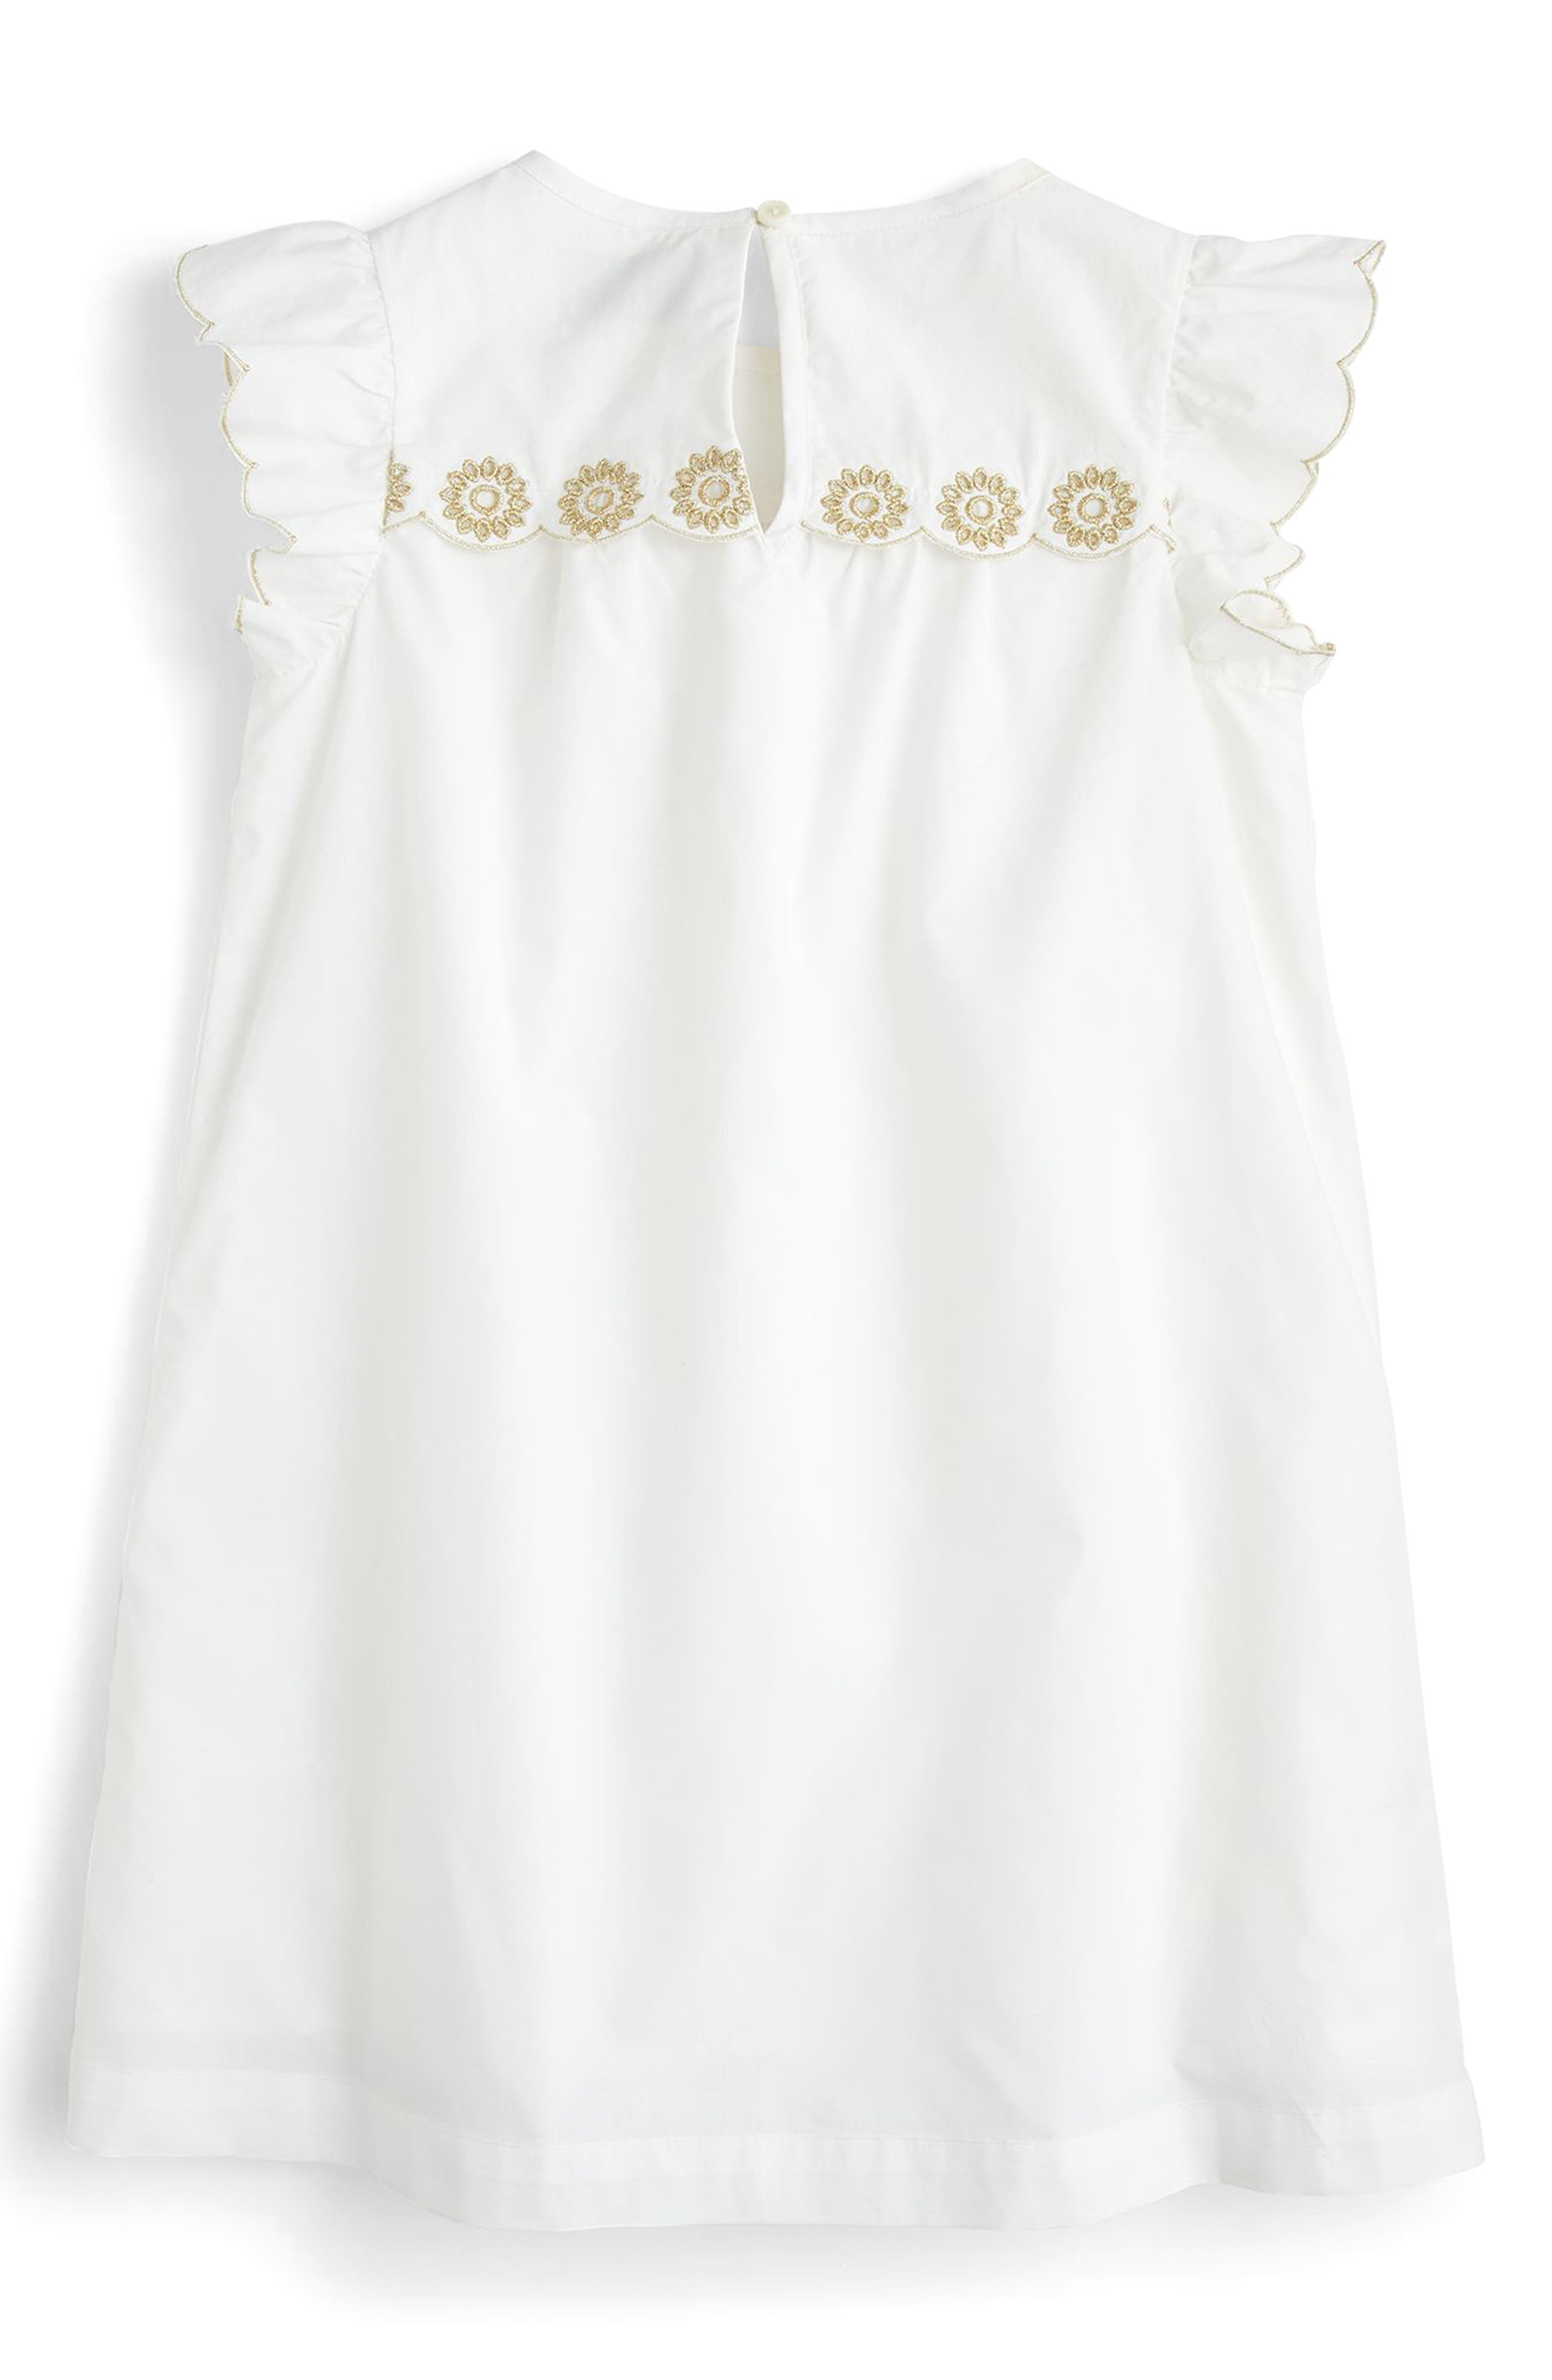 Floral Embroidered Shift Dress,                             Alternate thumbnail 2, color,                             100